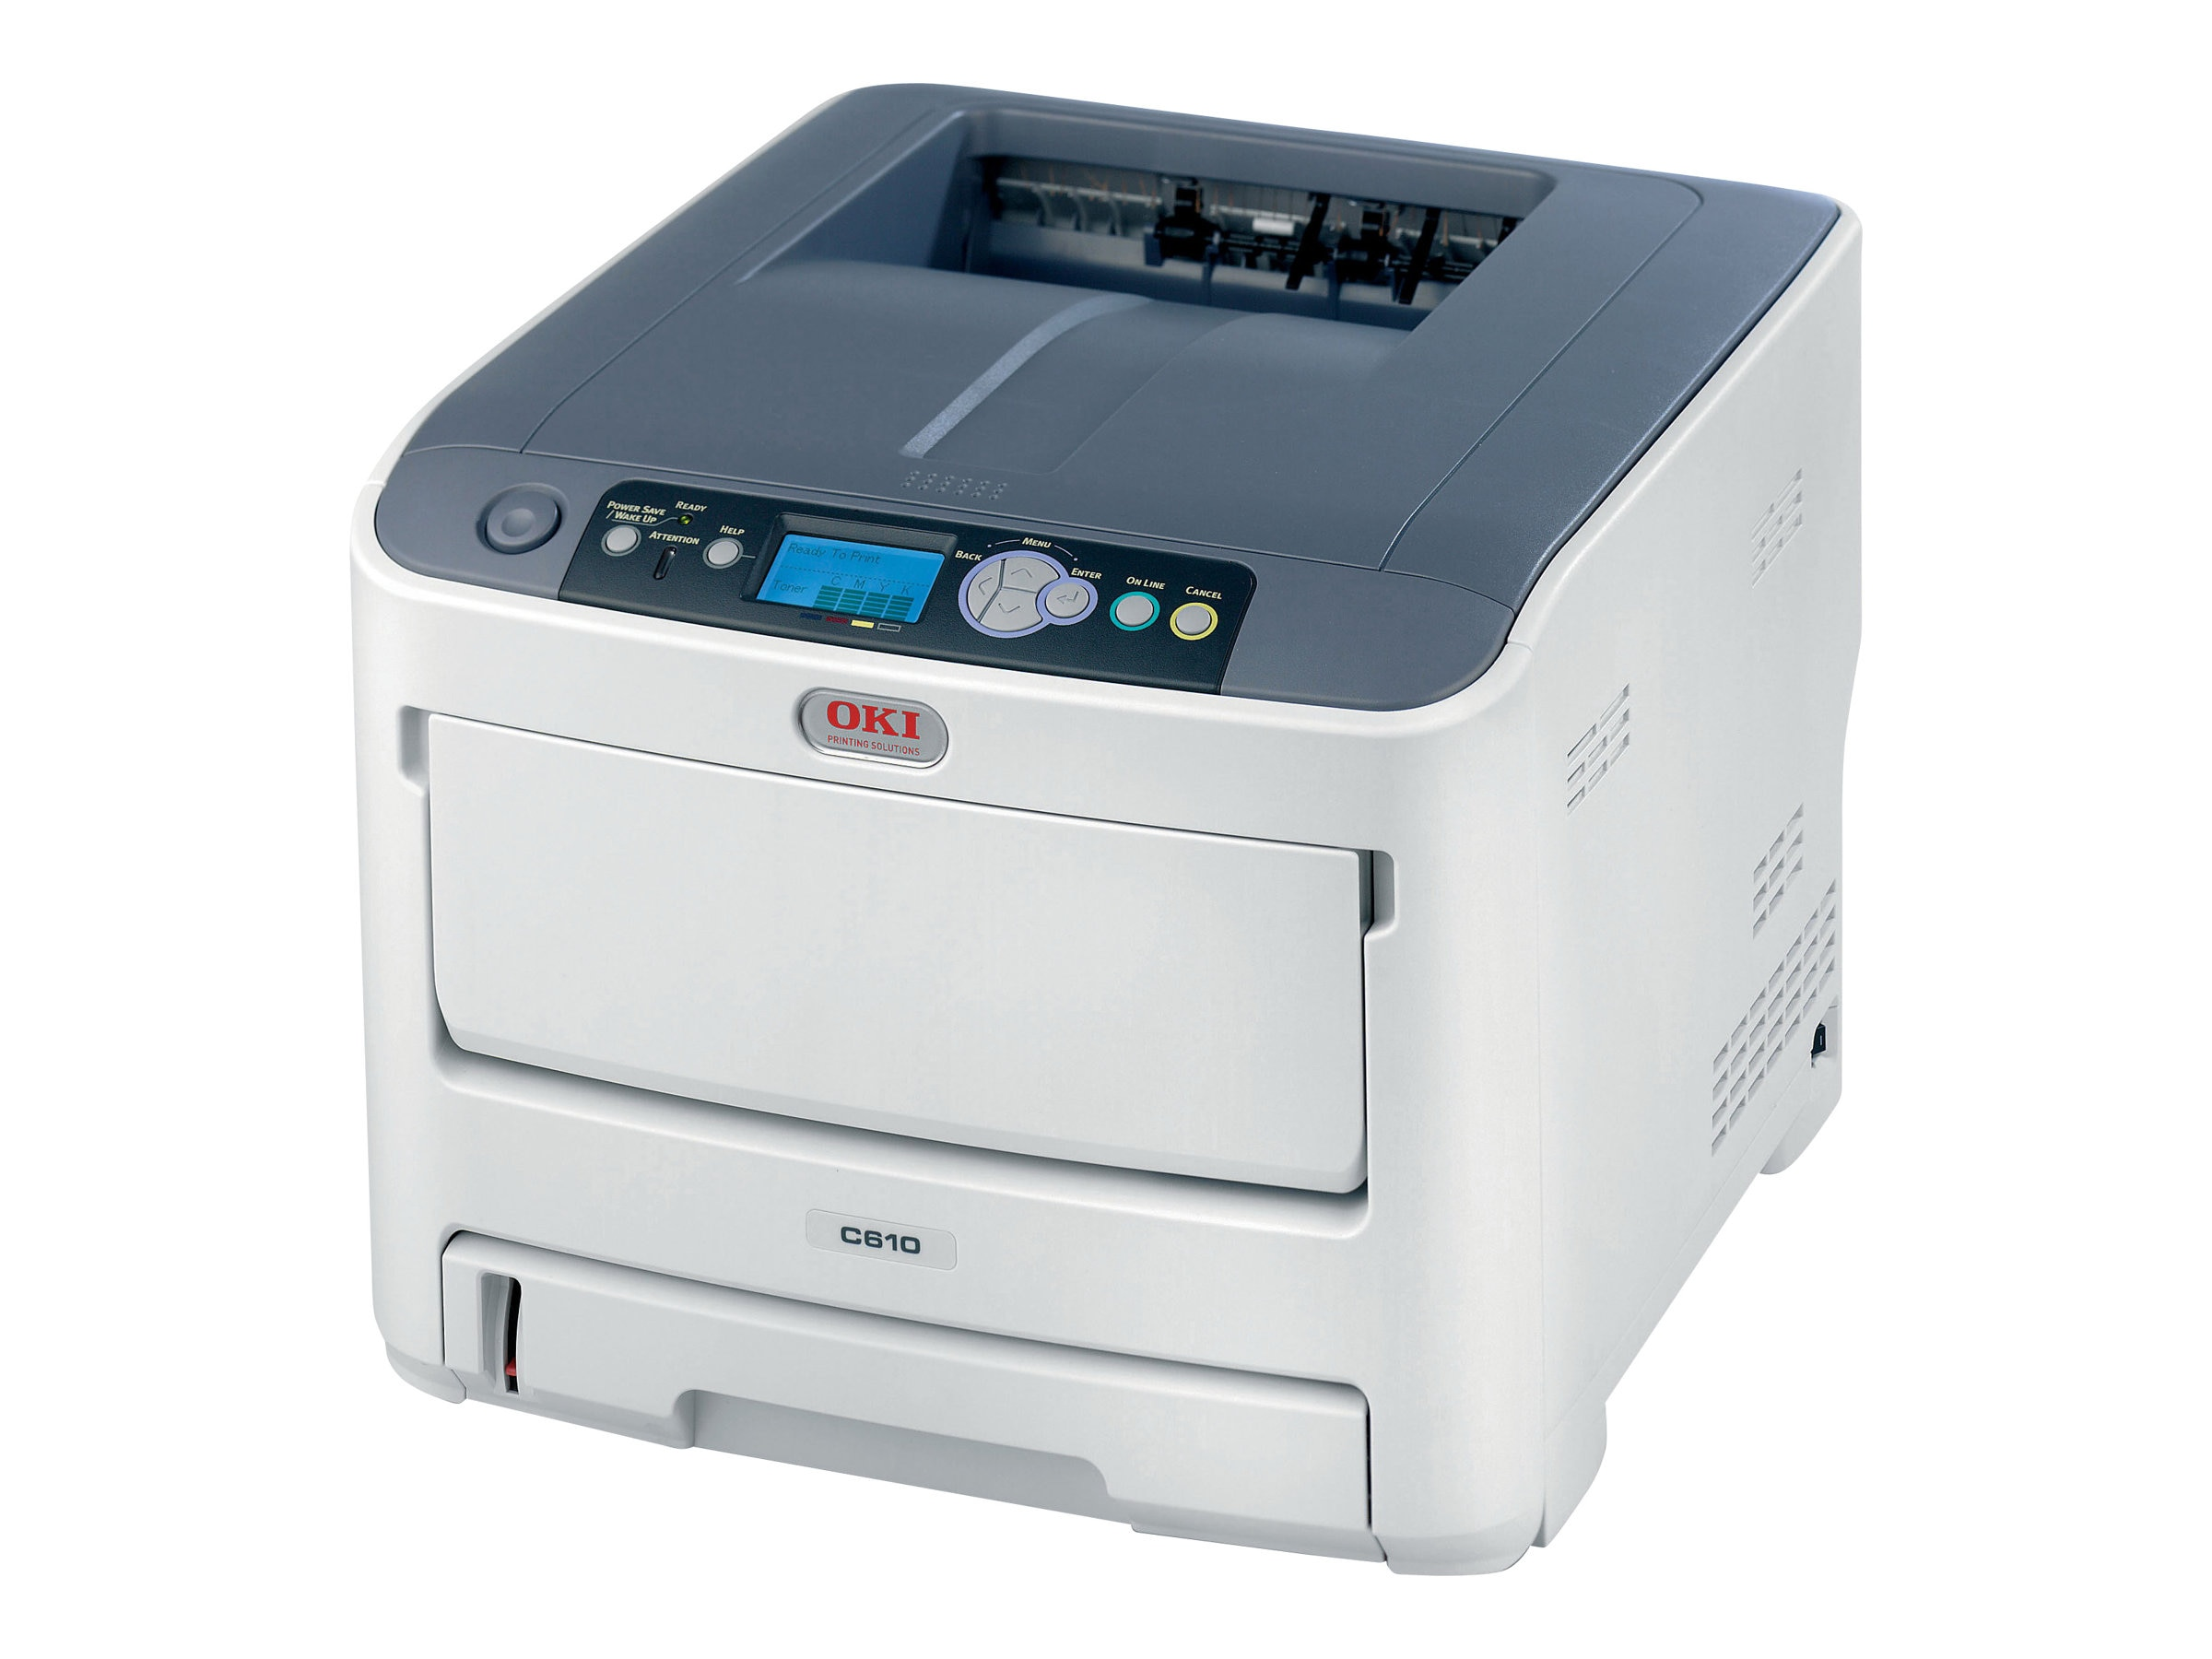 Oki C610n Digital Color Printer, 62433401